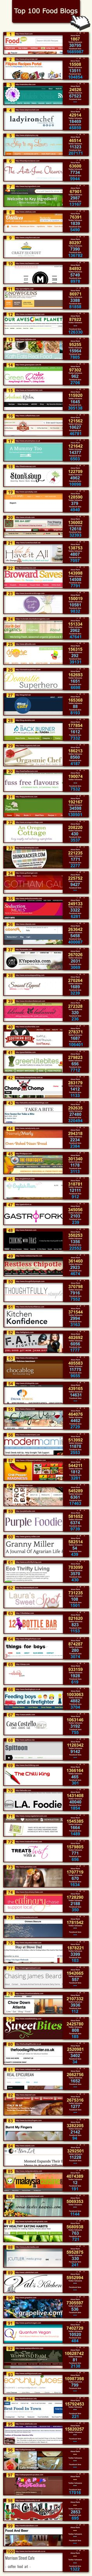 Great example of how to drive traffic to your blog. - She has the Top food blogs on her site